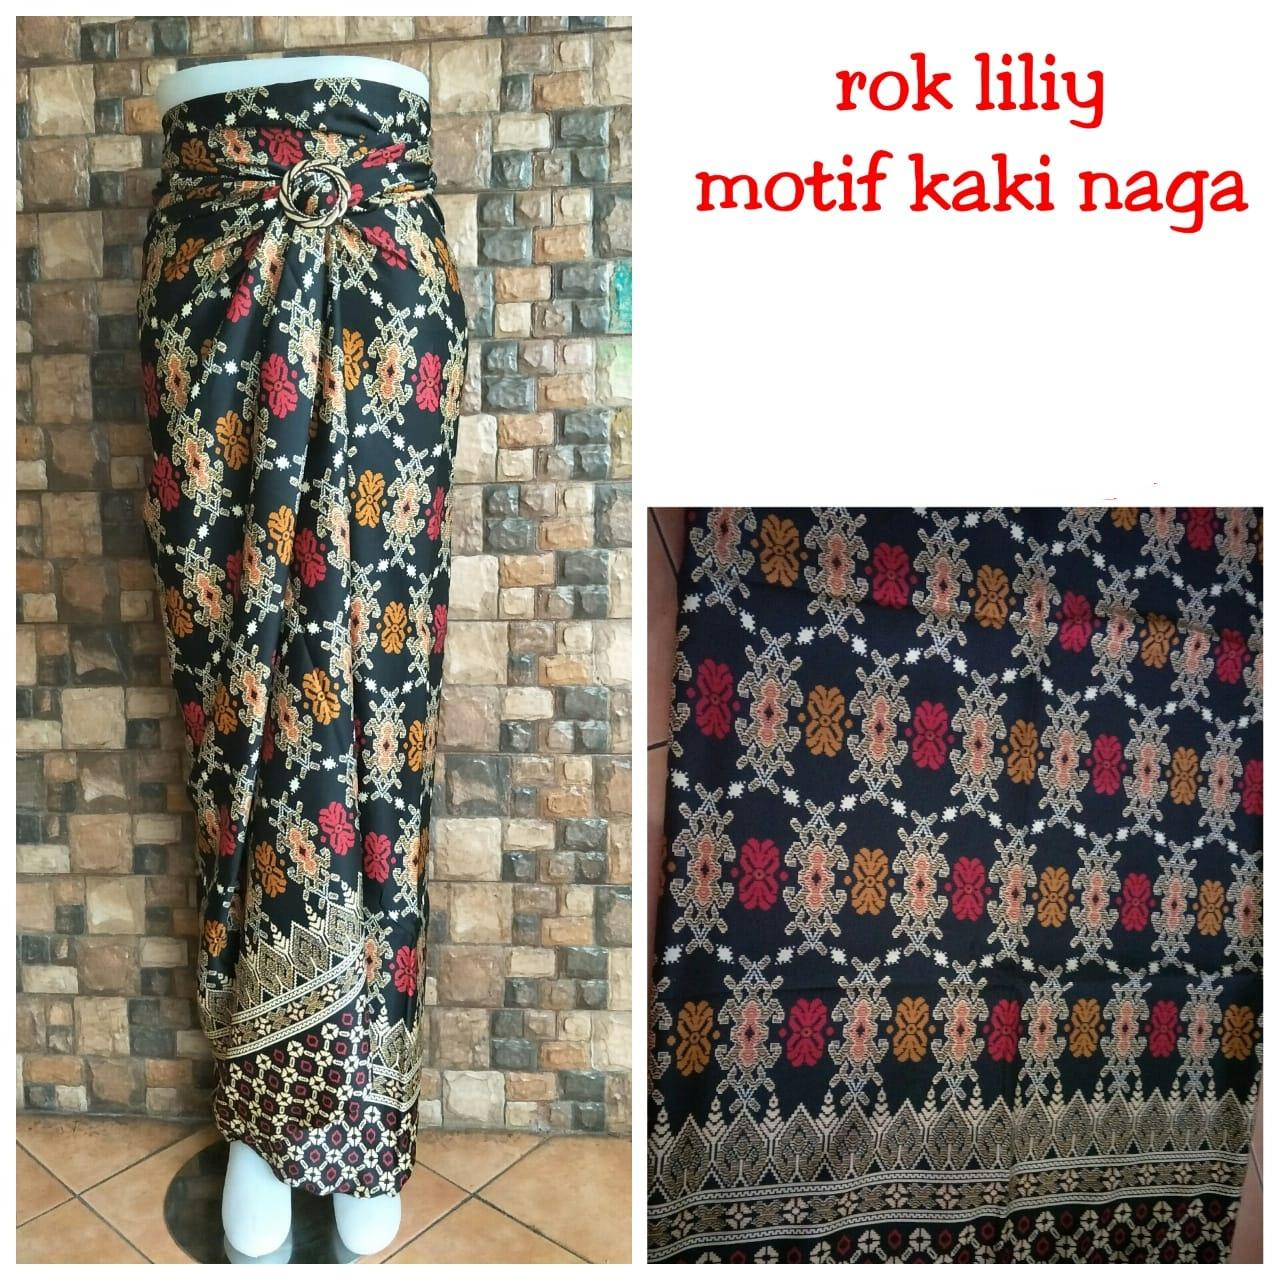 Cj collection Rok lilit batik panjang wanita jumbo long skirt Jayla